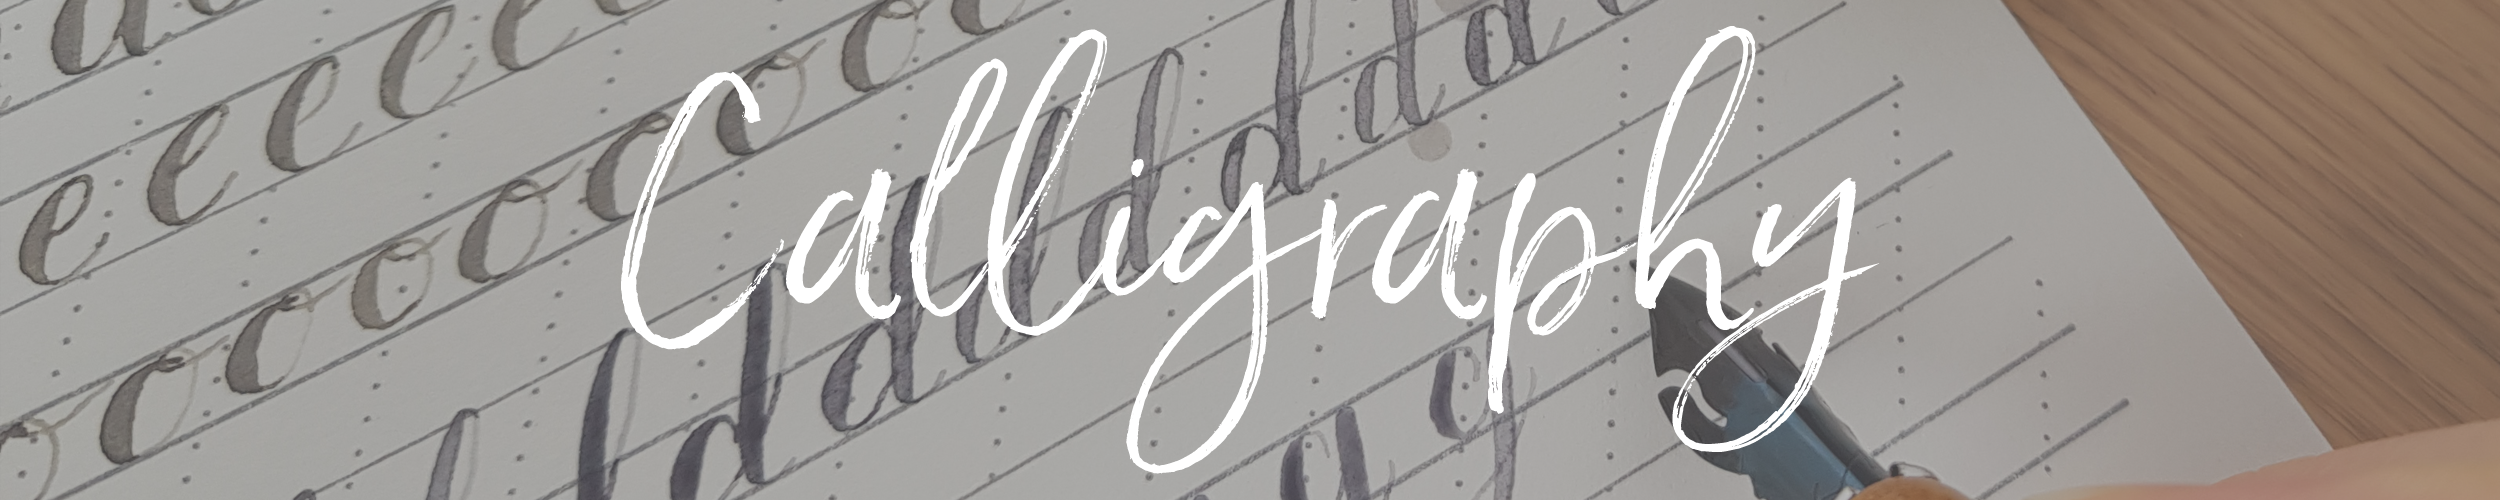 calligraphy banner.png